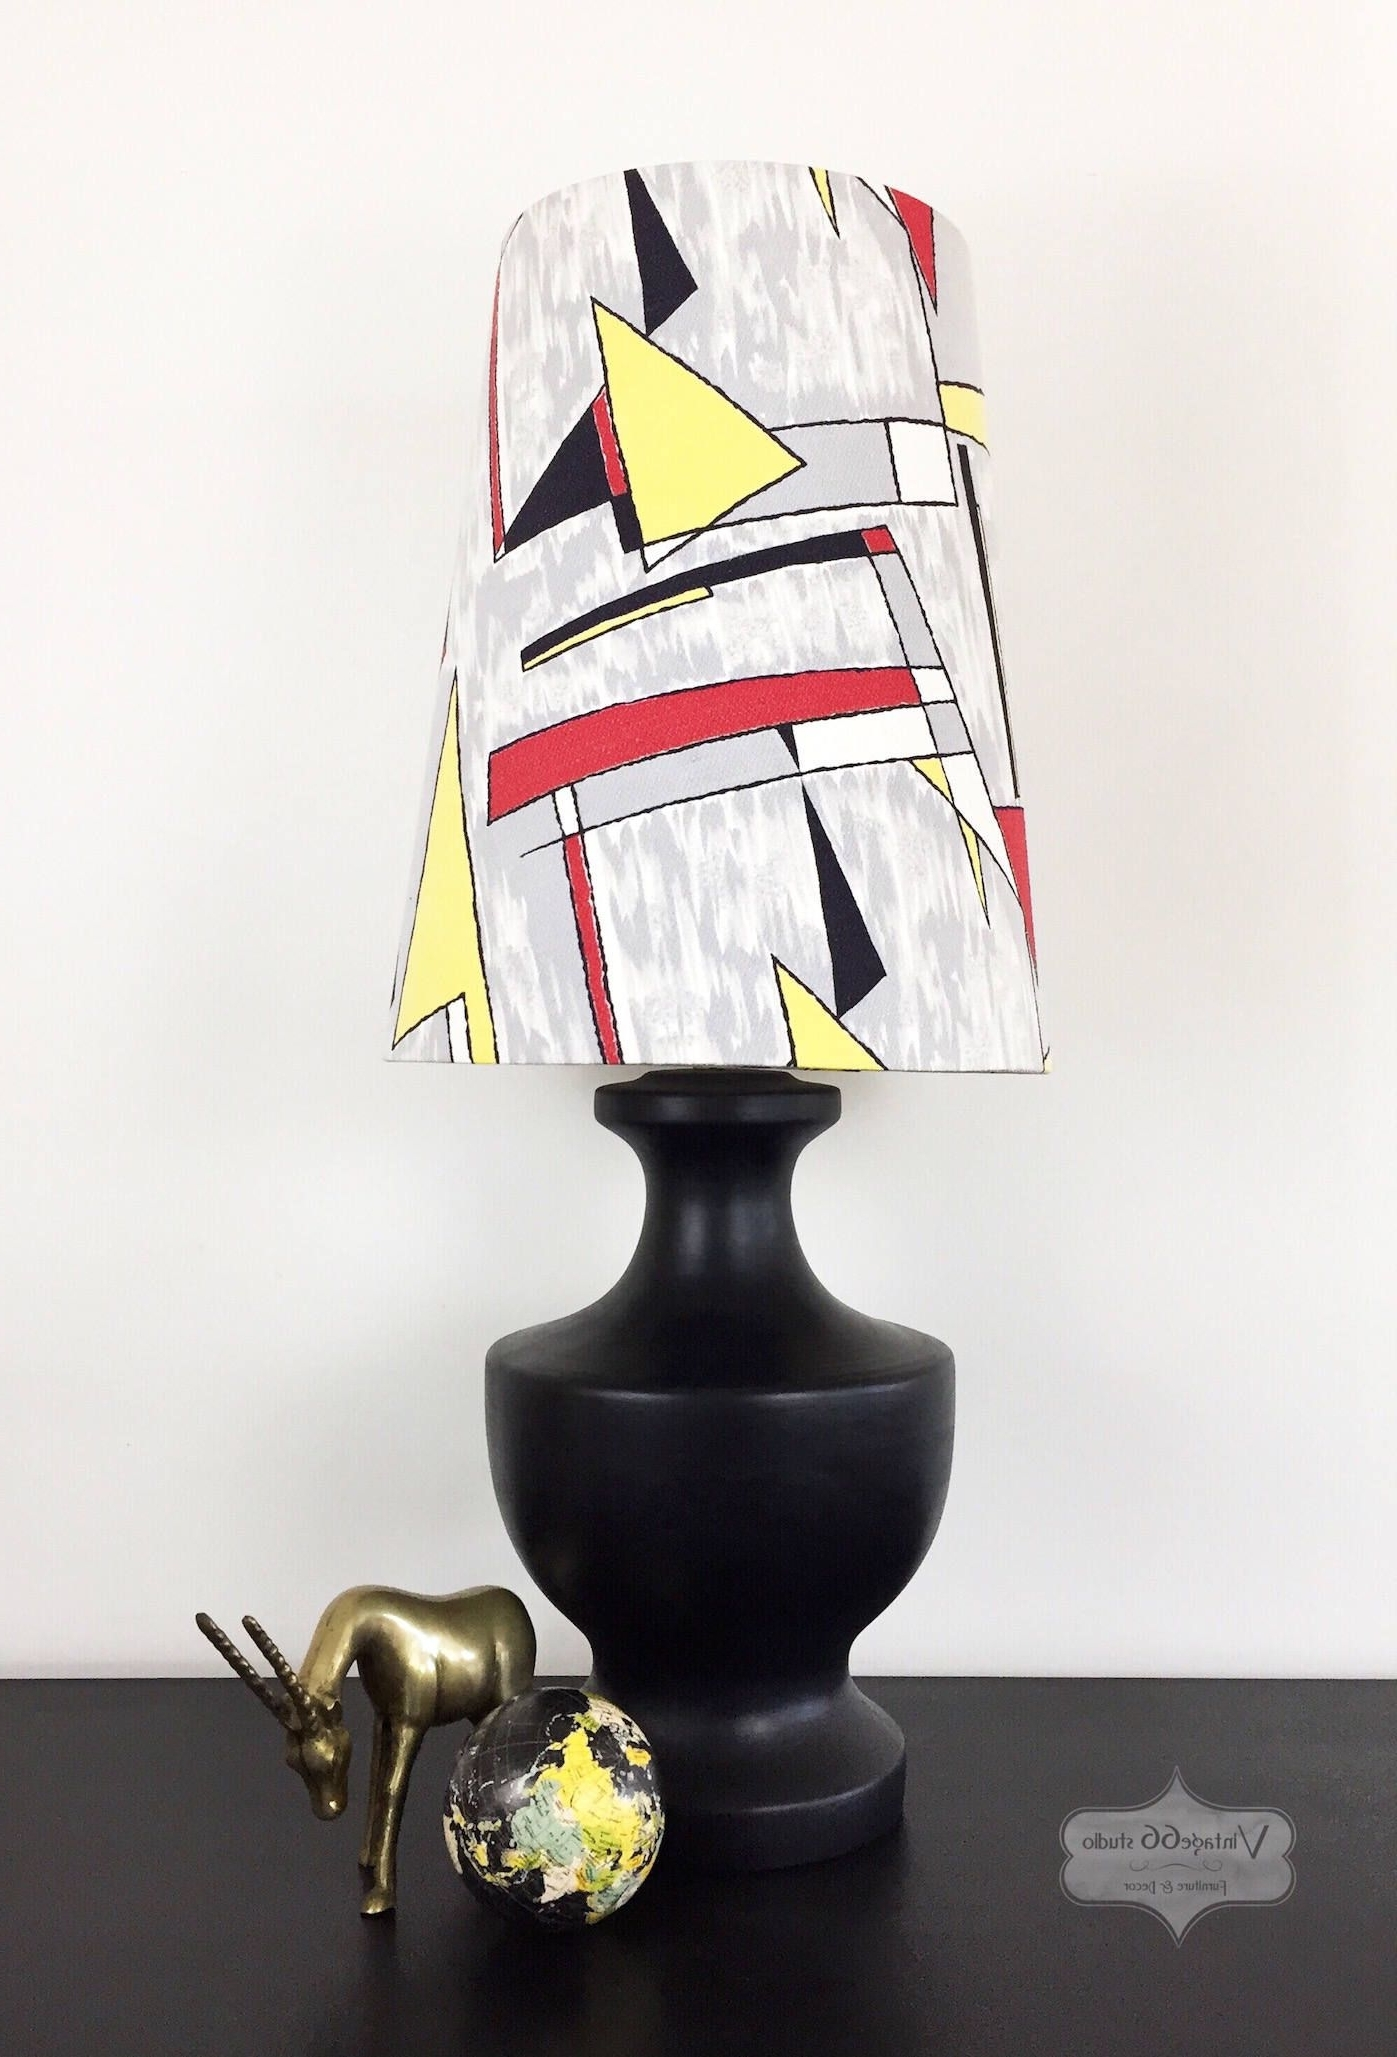 Favorite Red Living Room Table Lamps For Vintage Black Table Lamp With Atomic Barkcloth Shade, Retro, Mid (View 19 of 20)